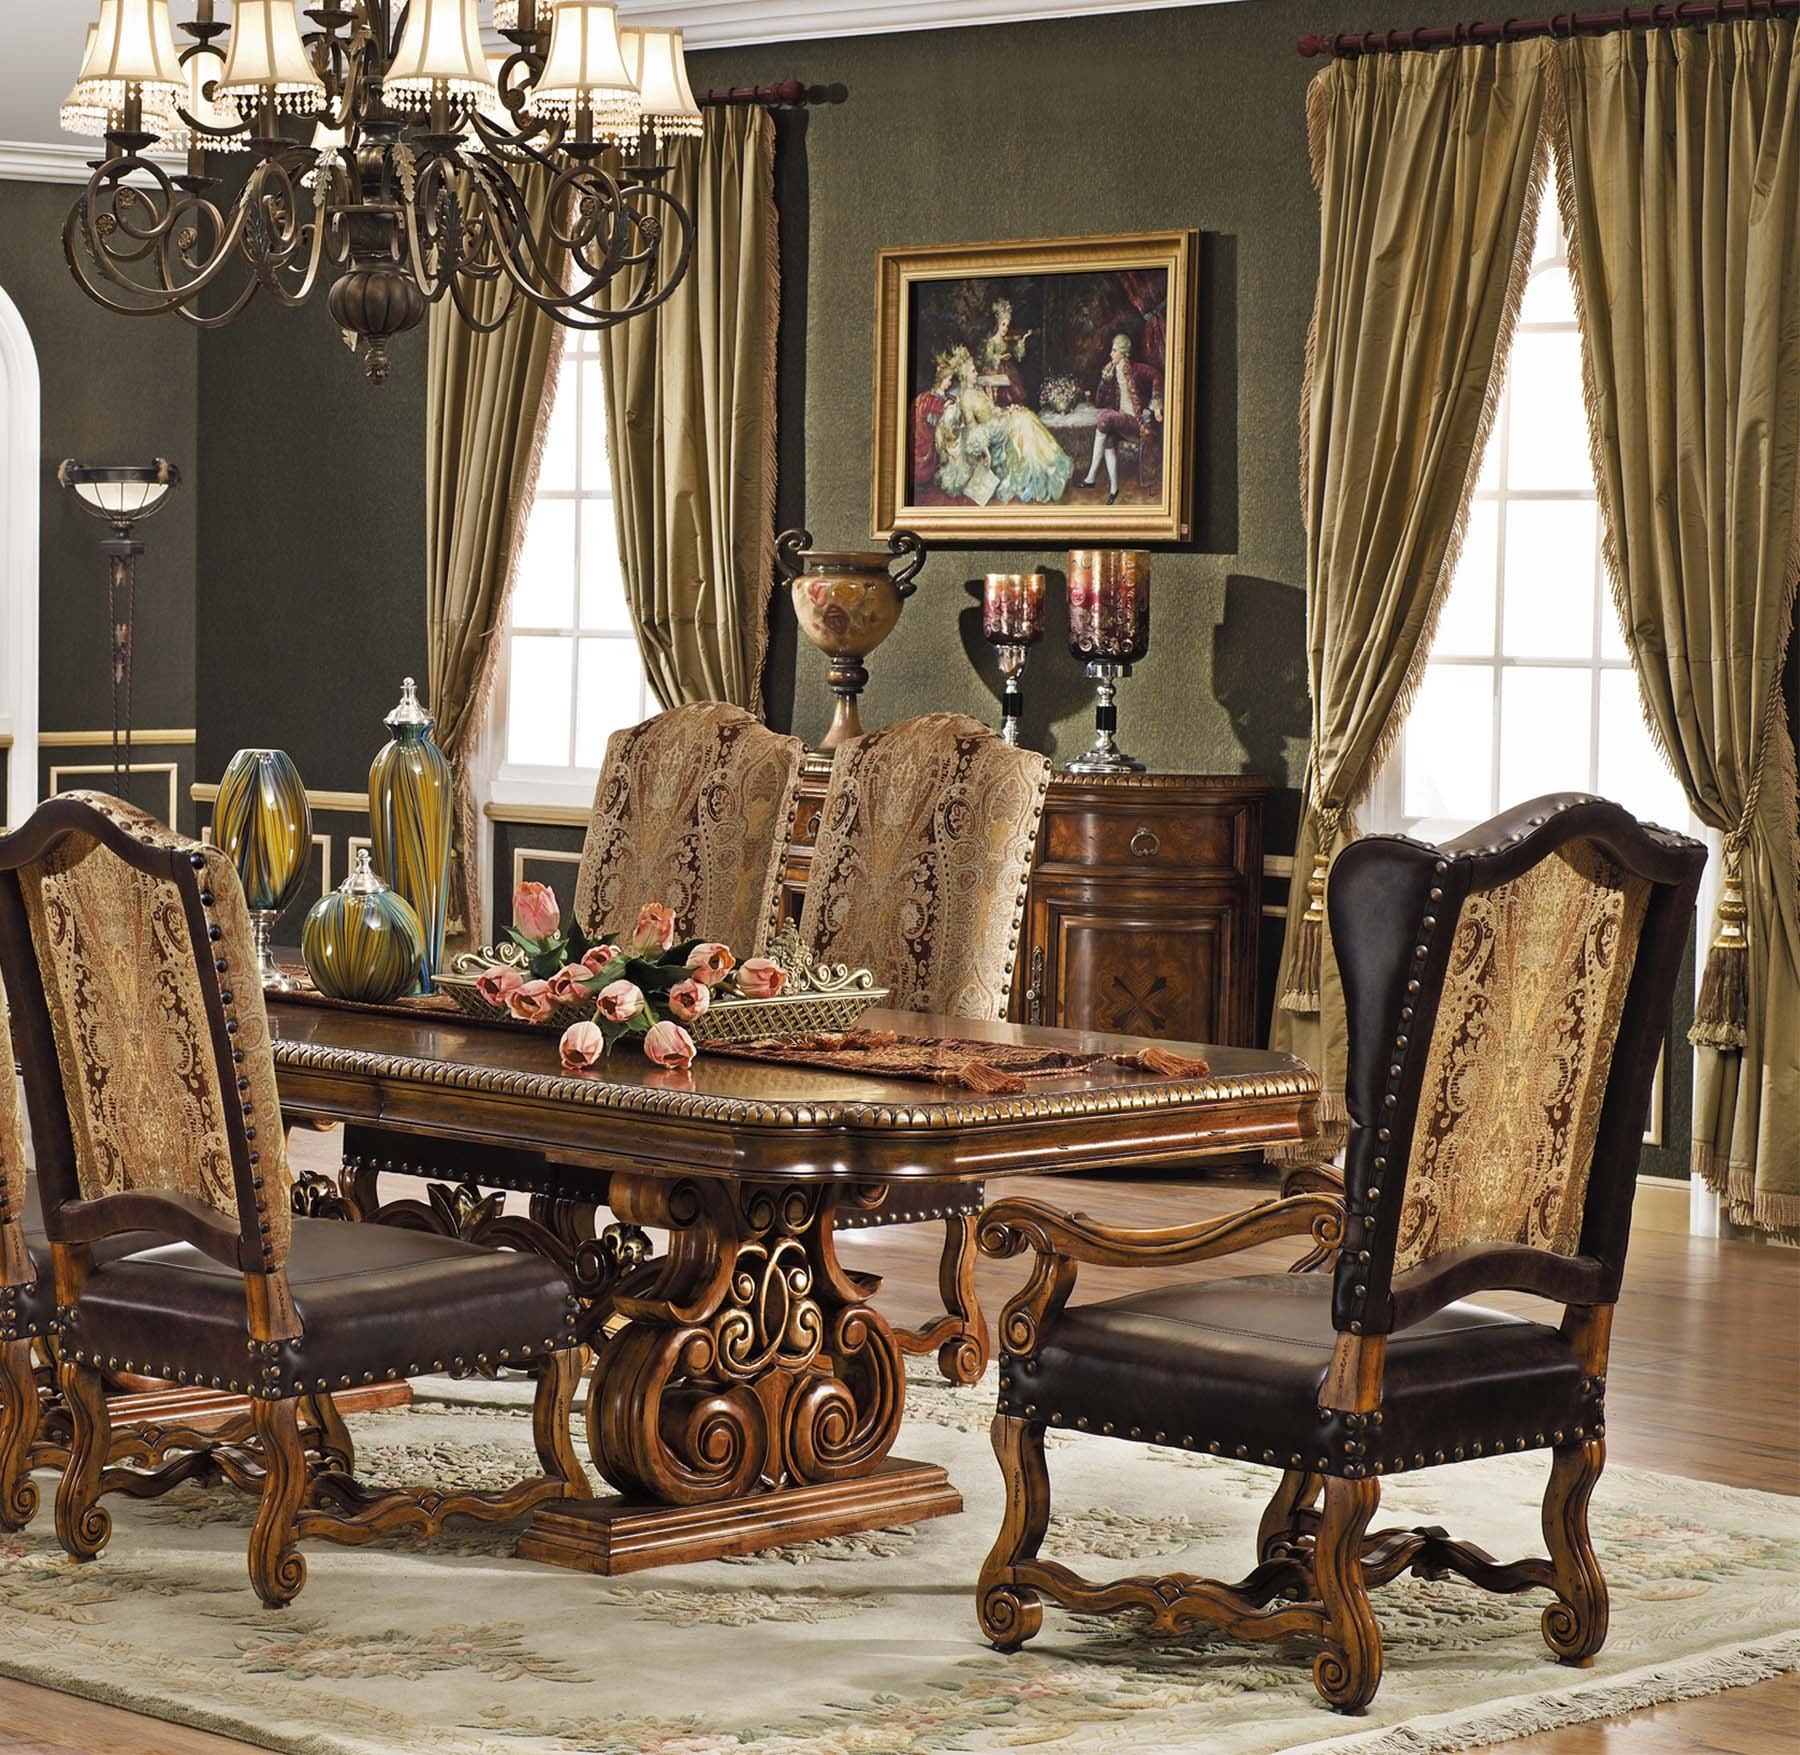 marlborough dining set table gold accent pcs shown antique walnut finish metal top coffee large garden umbrellas round hammered inch square tablecloth globe lighting portland tile